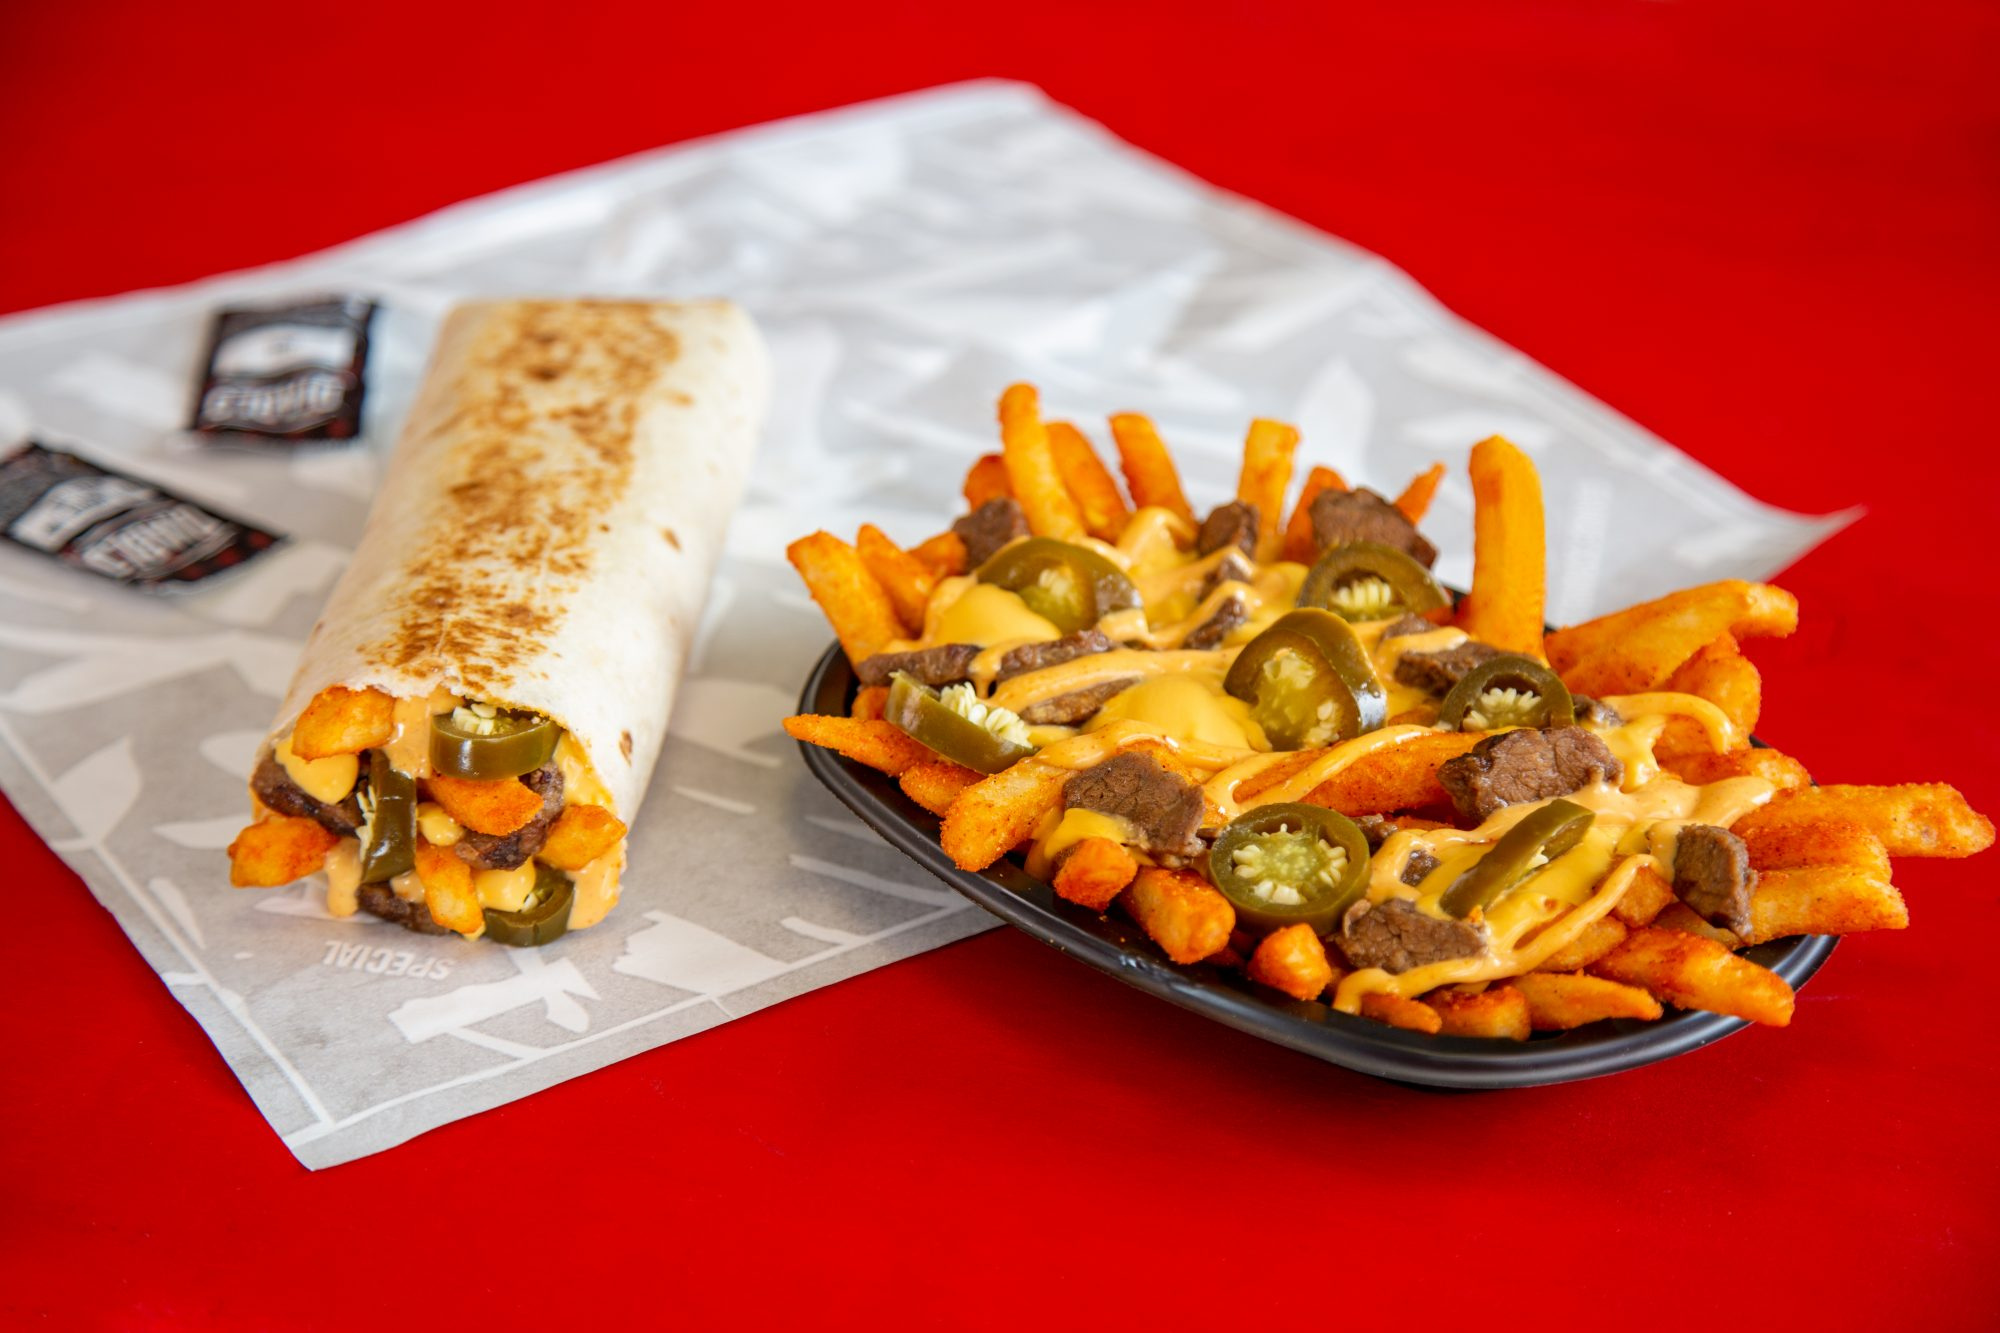 Taco Bell's New Steak Rattlesnake Fries Look Deliciously Spicy